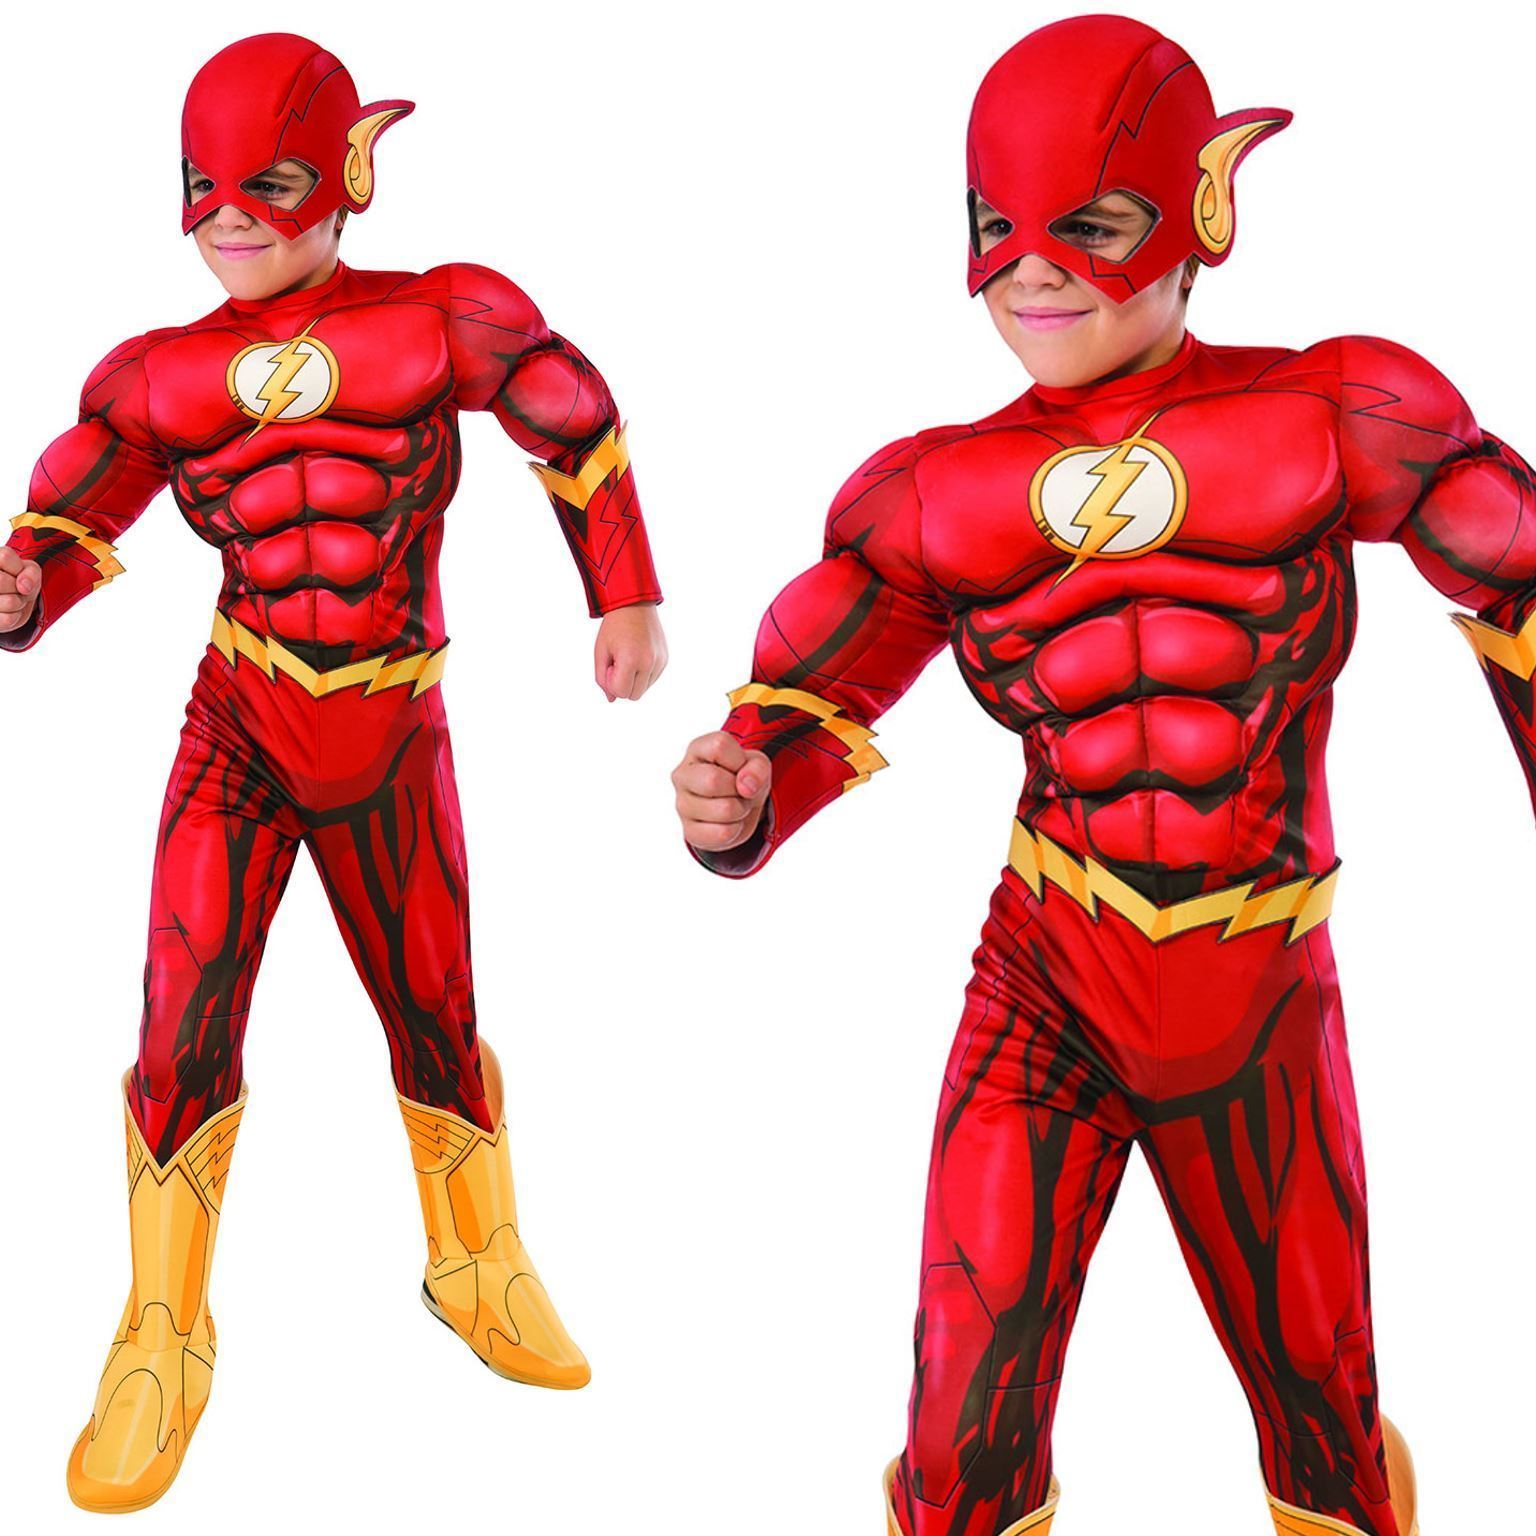 Details about Boys Deluxe Flash Costume Marvel Avengers Superhero Child Fancy Dress Outfit